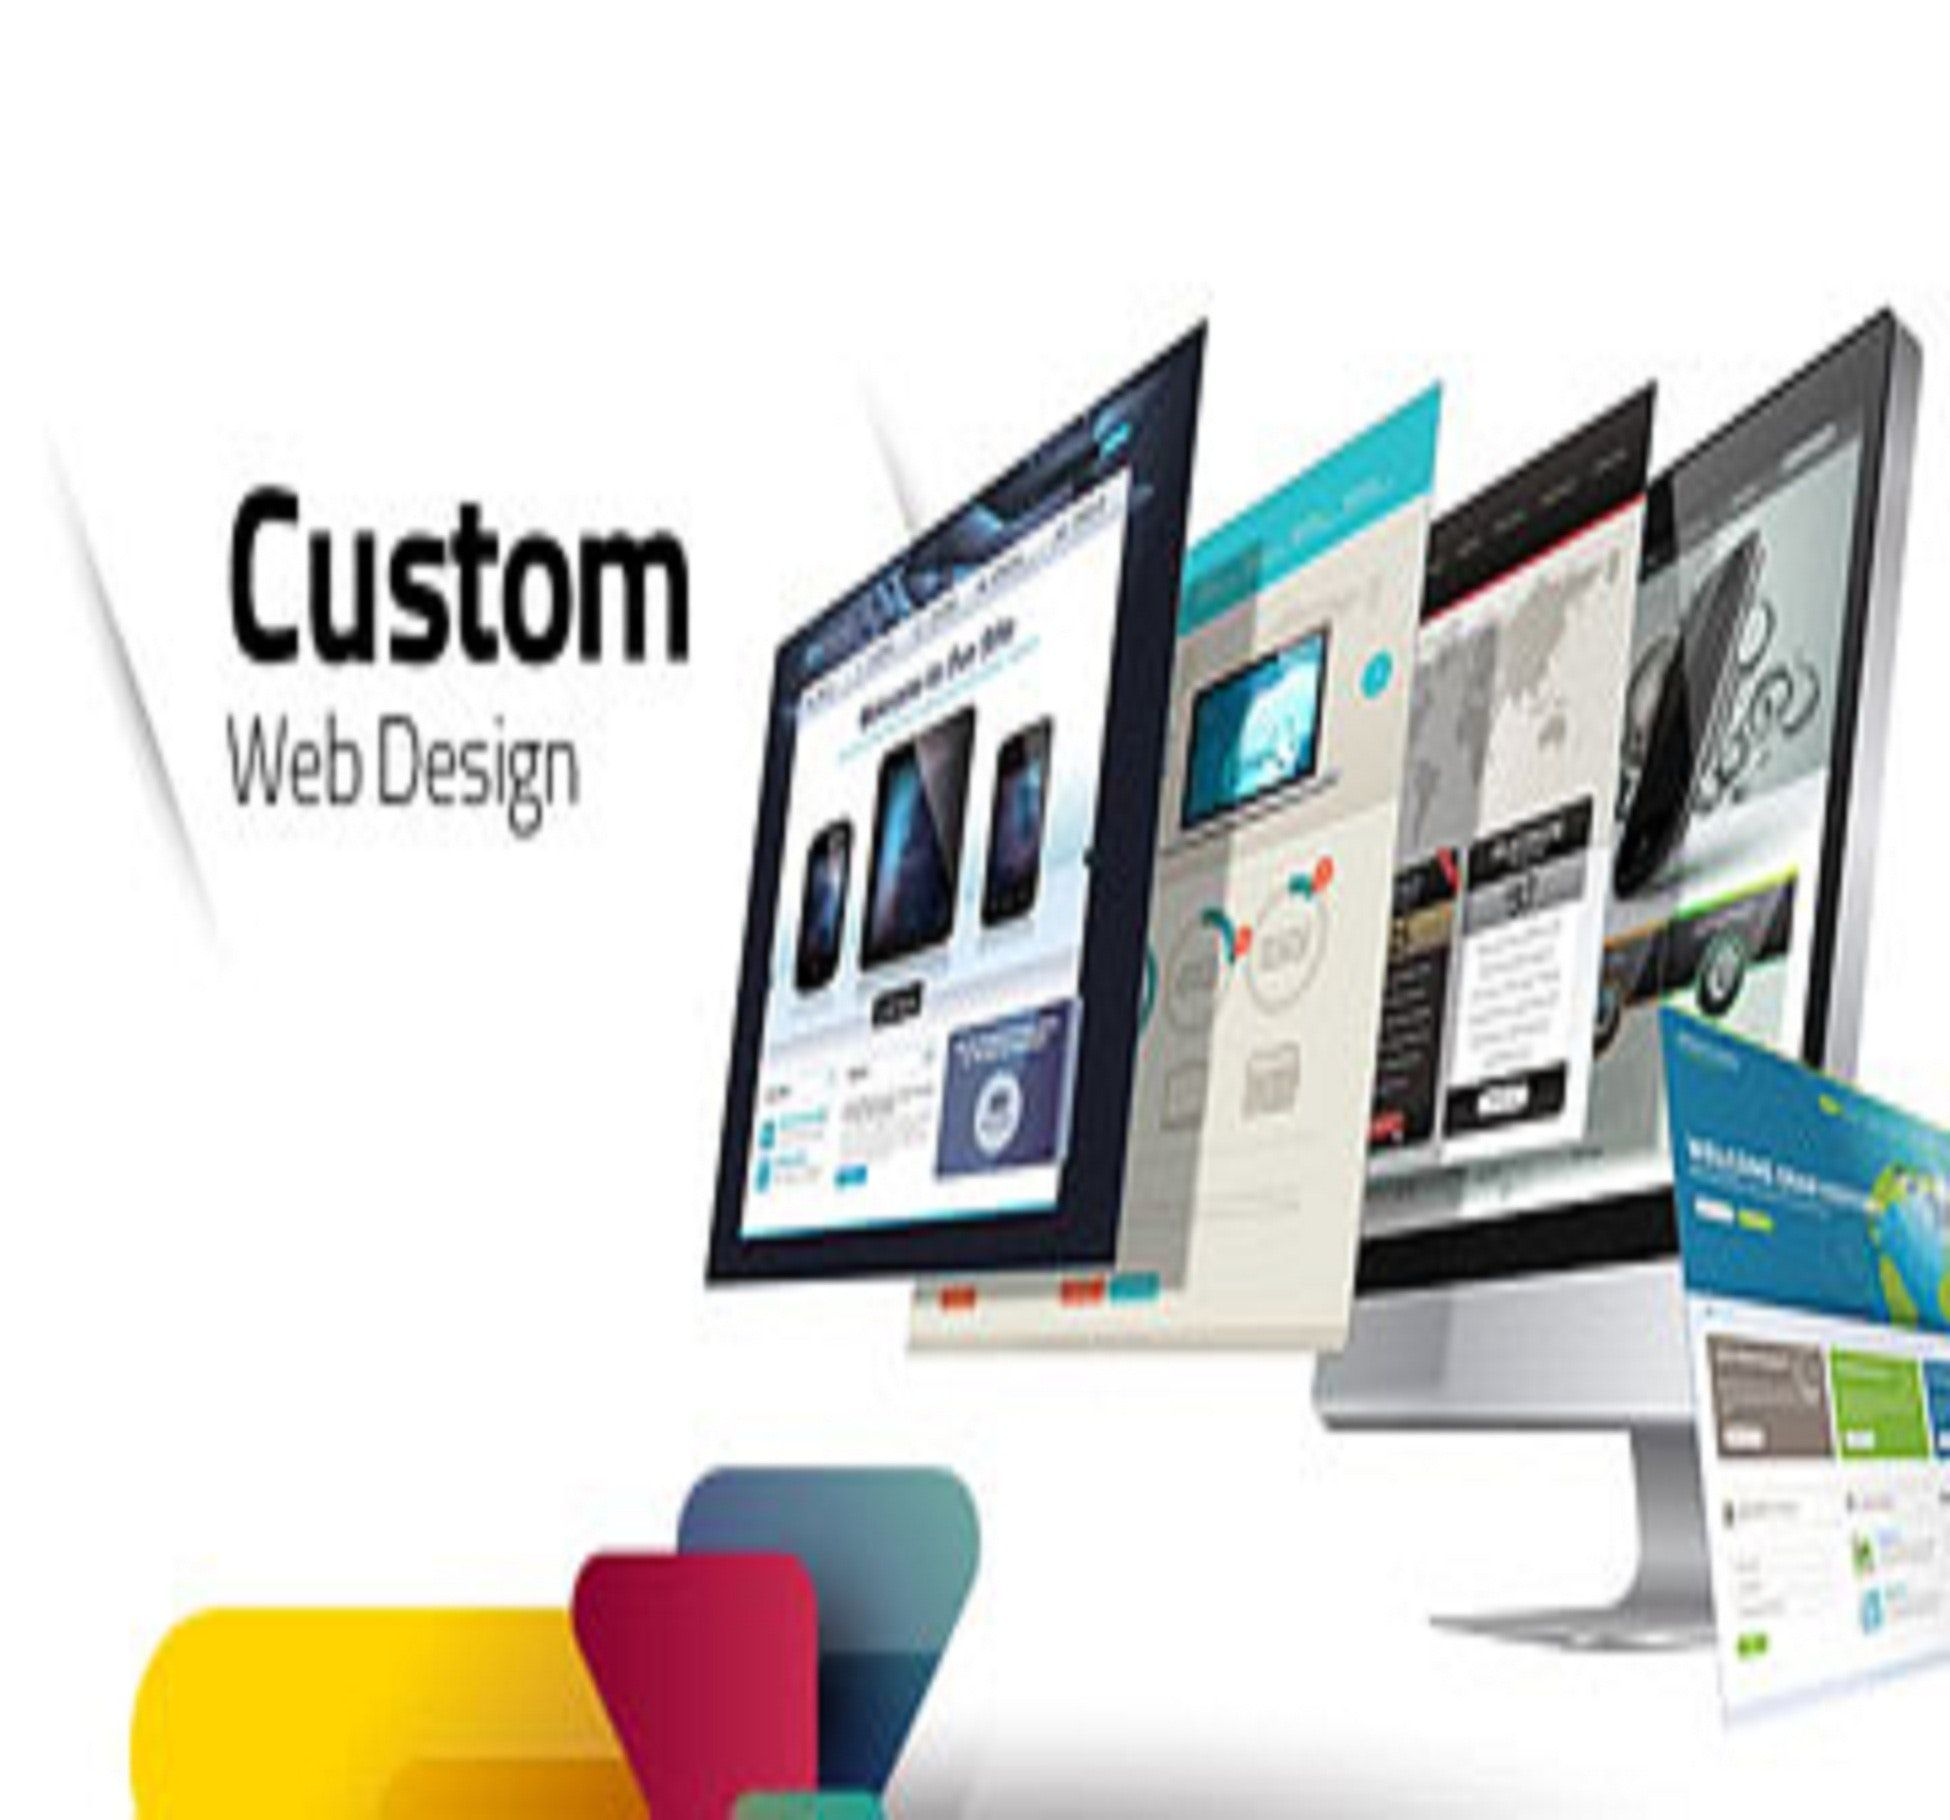 Web Designing Company in Chandigarh  Web Designing Company in Chandigarh offers a unique Web design with an interactive user interface t